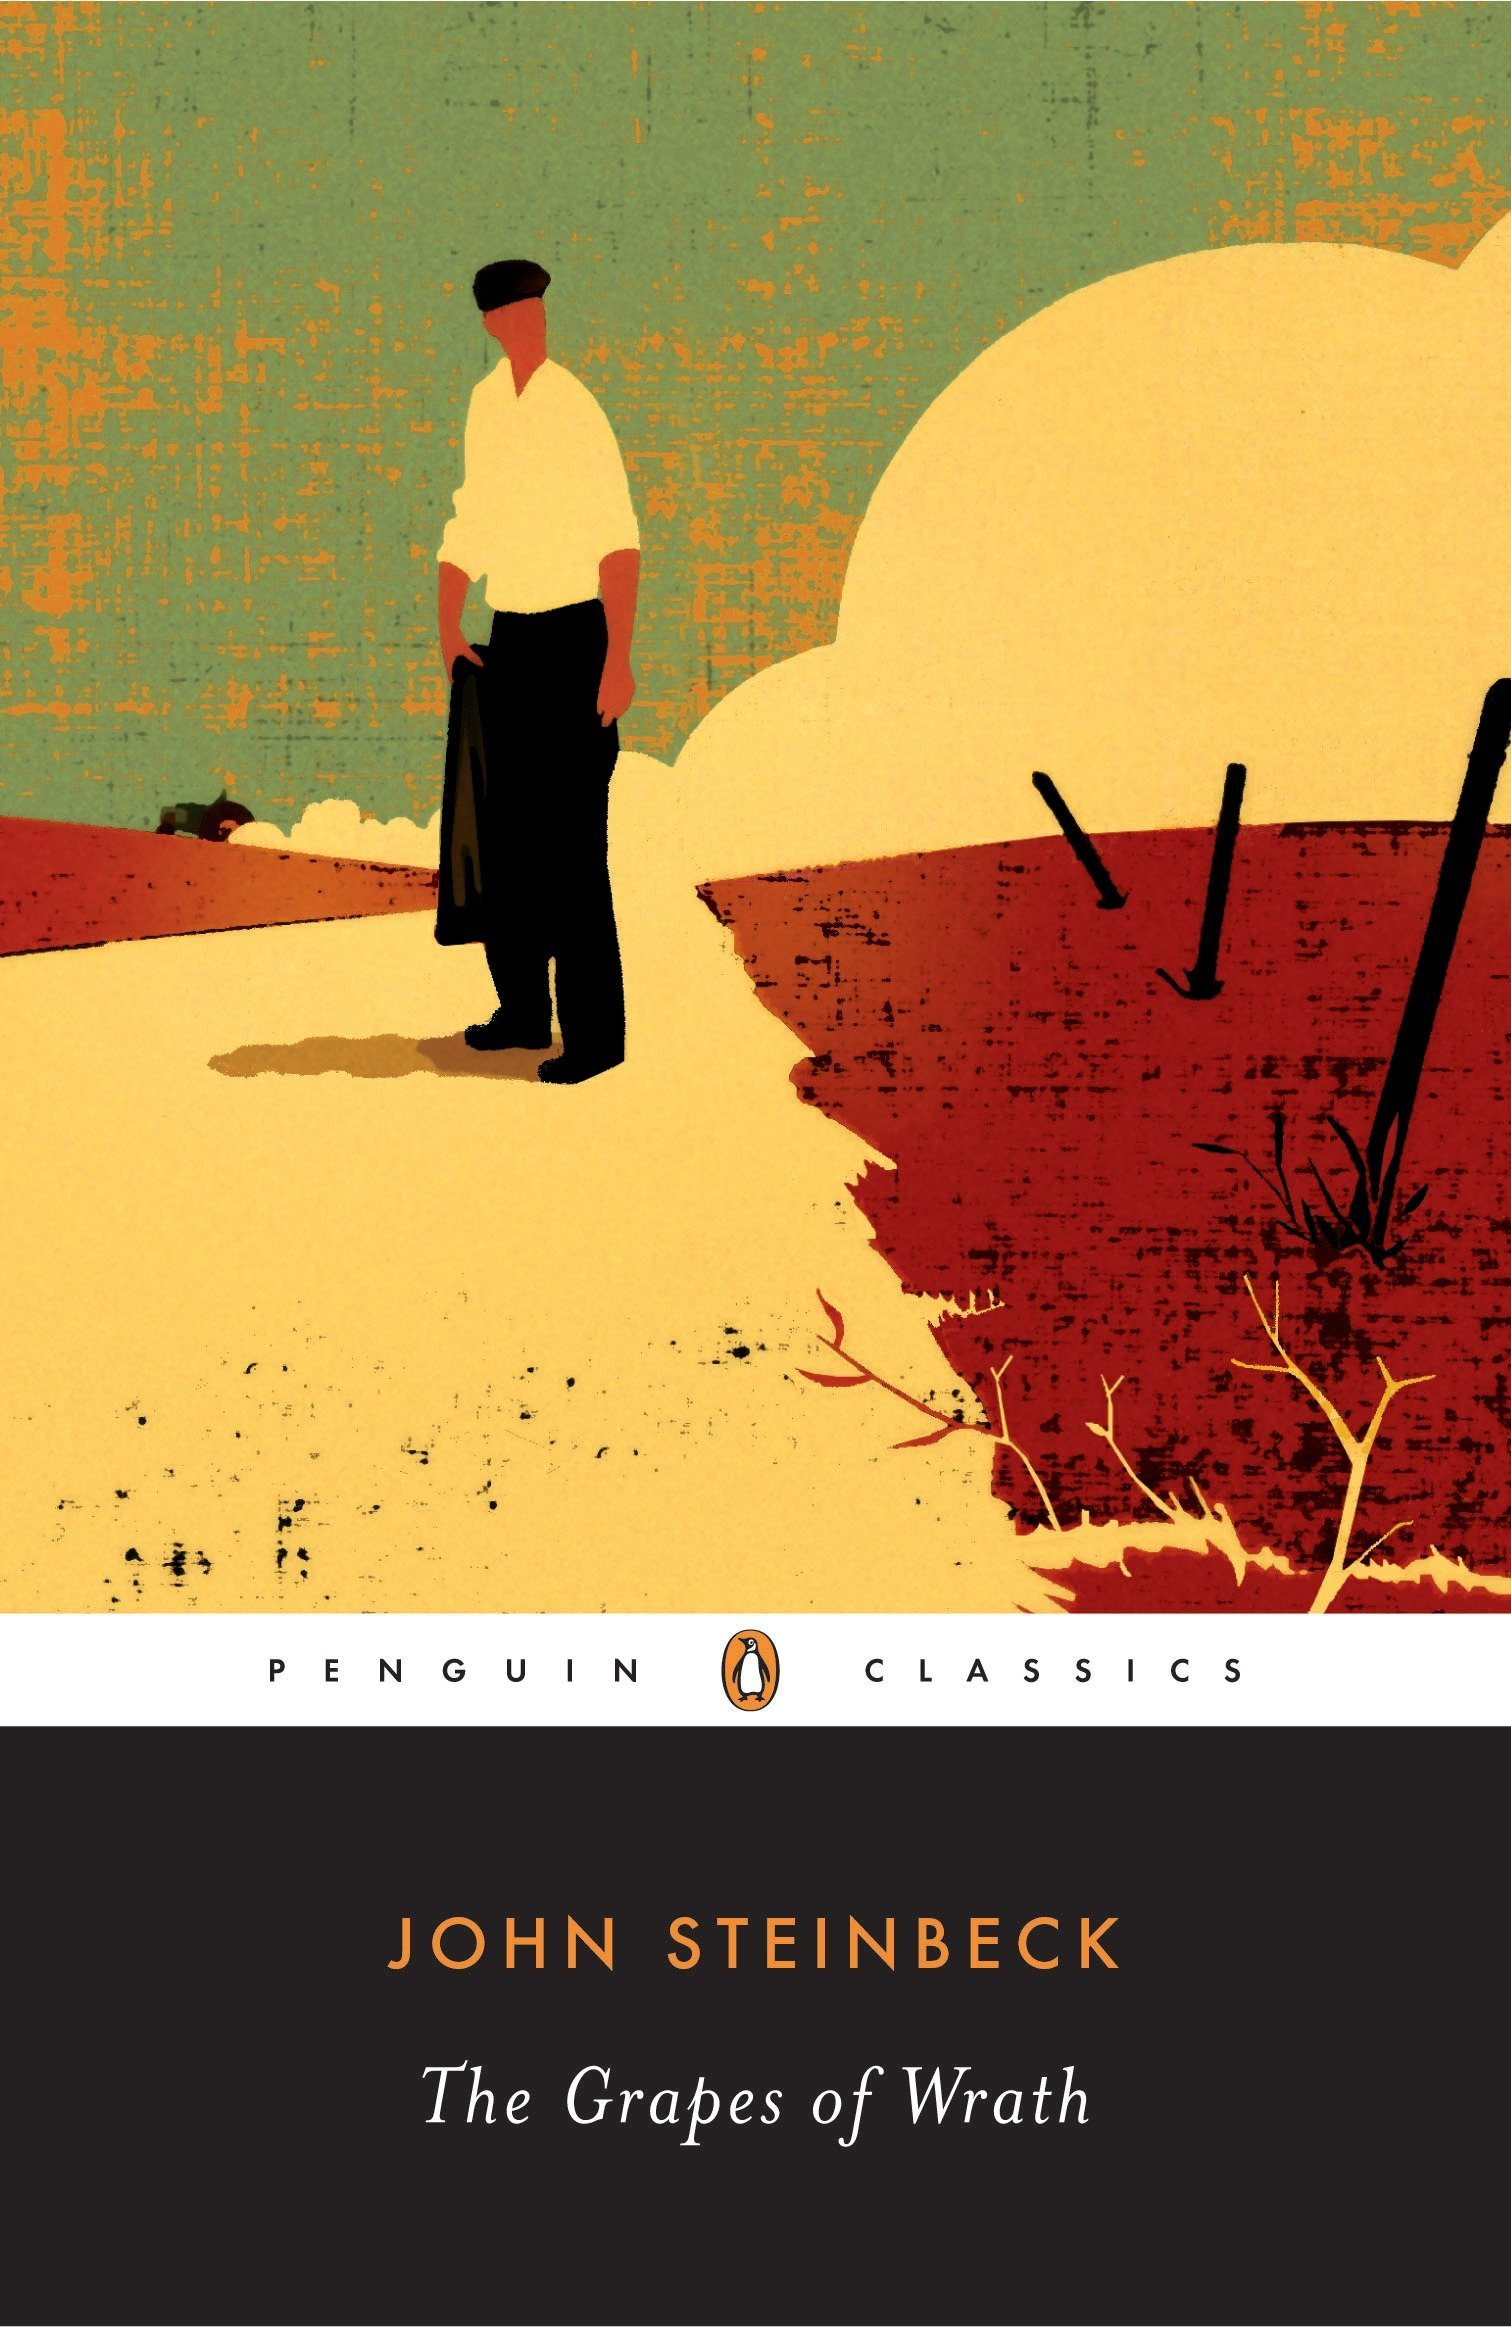 The Grapes Of Wrath John Steinbeck Robert Demott 9780143039433